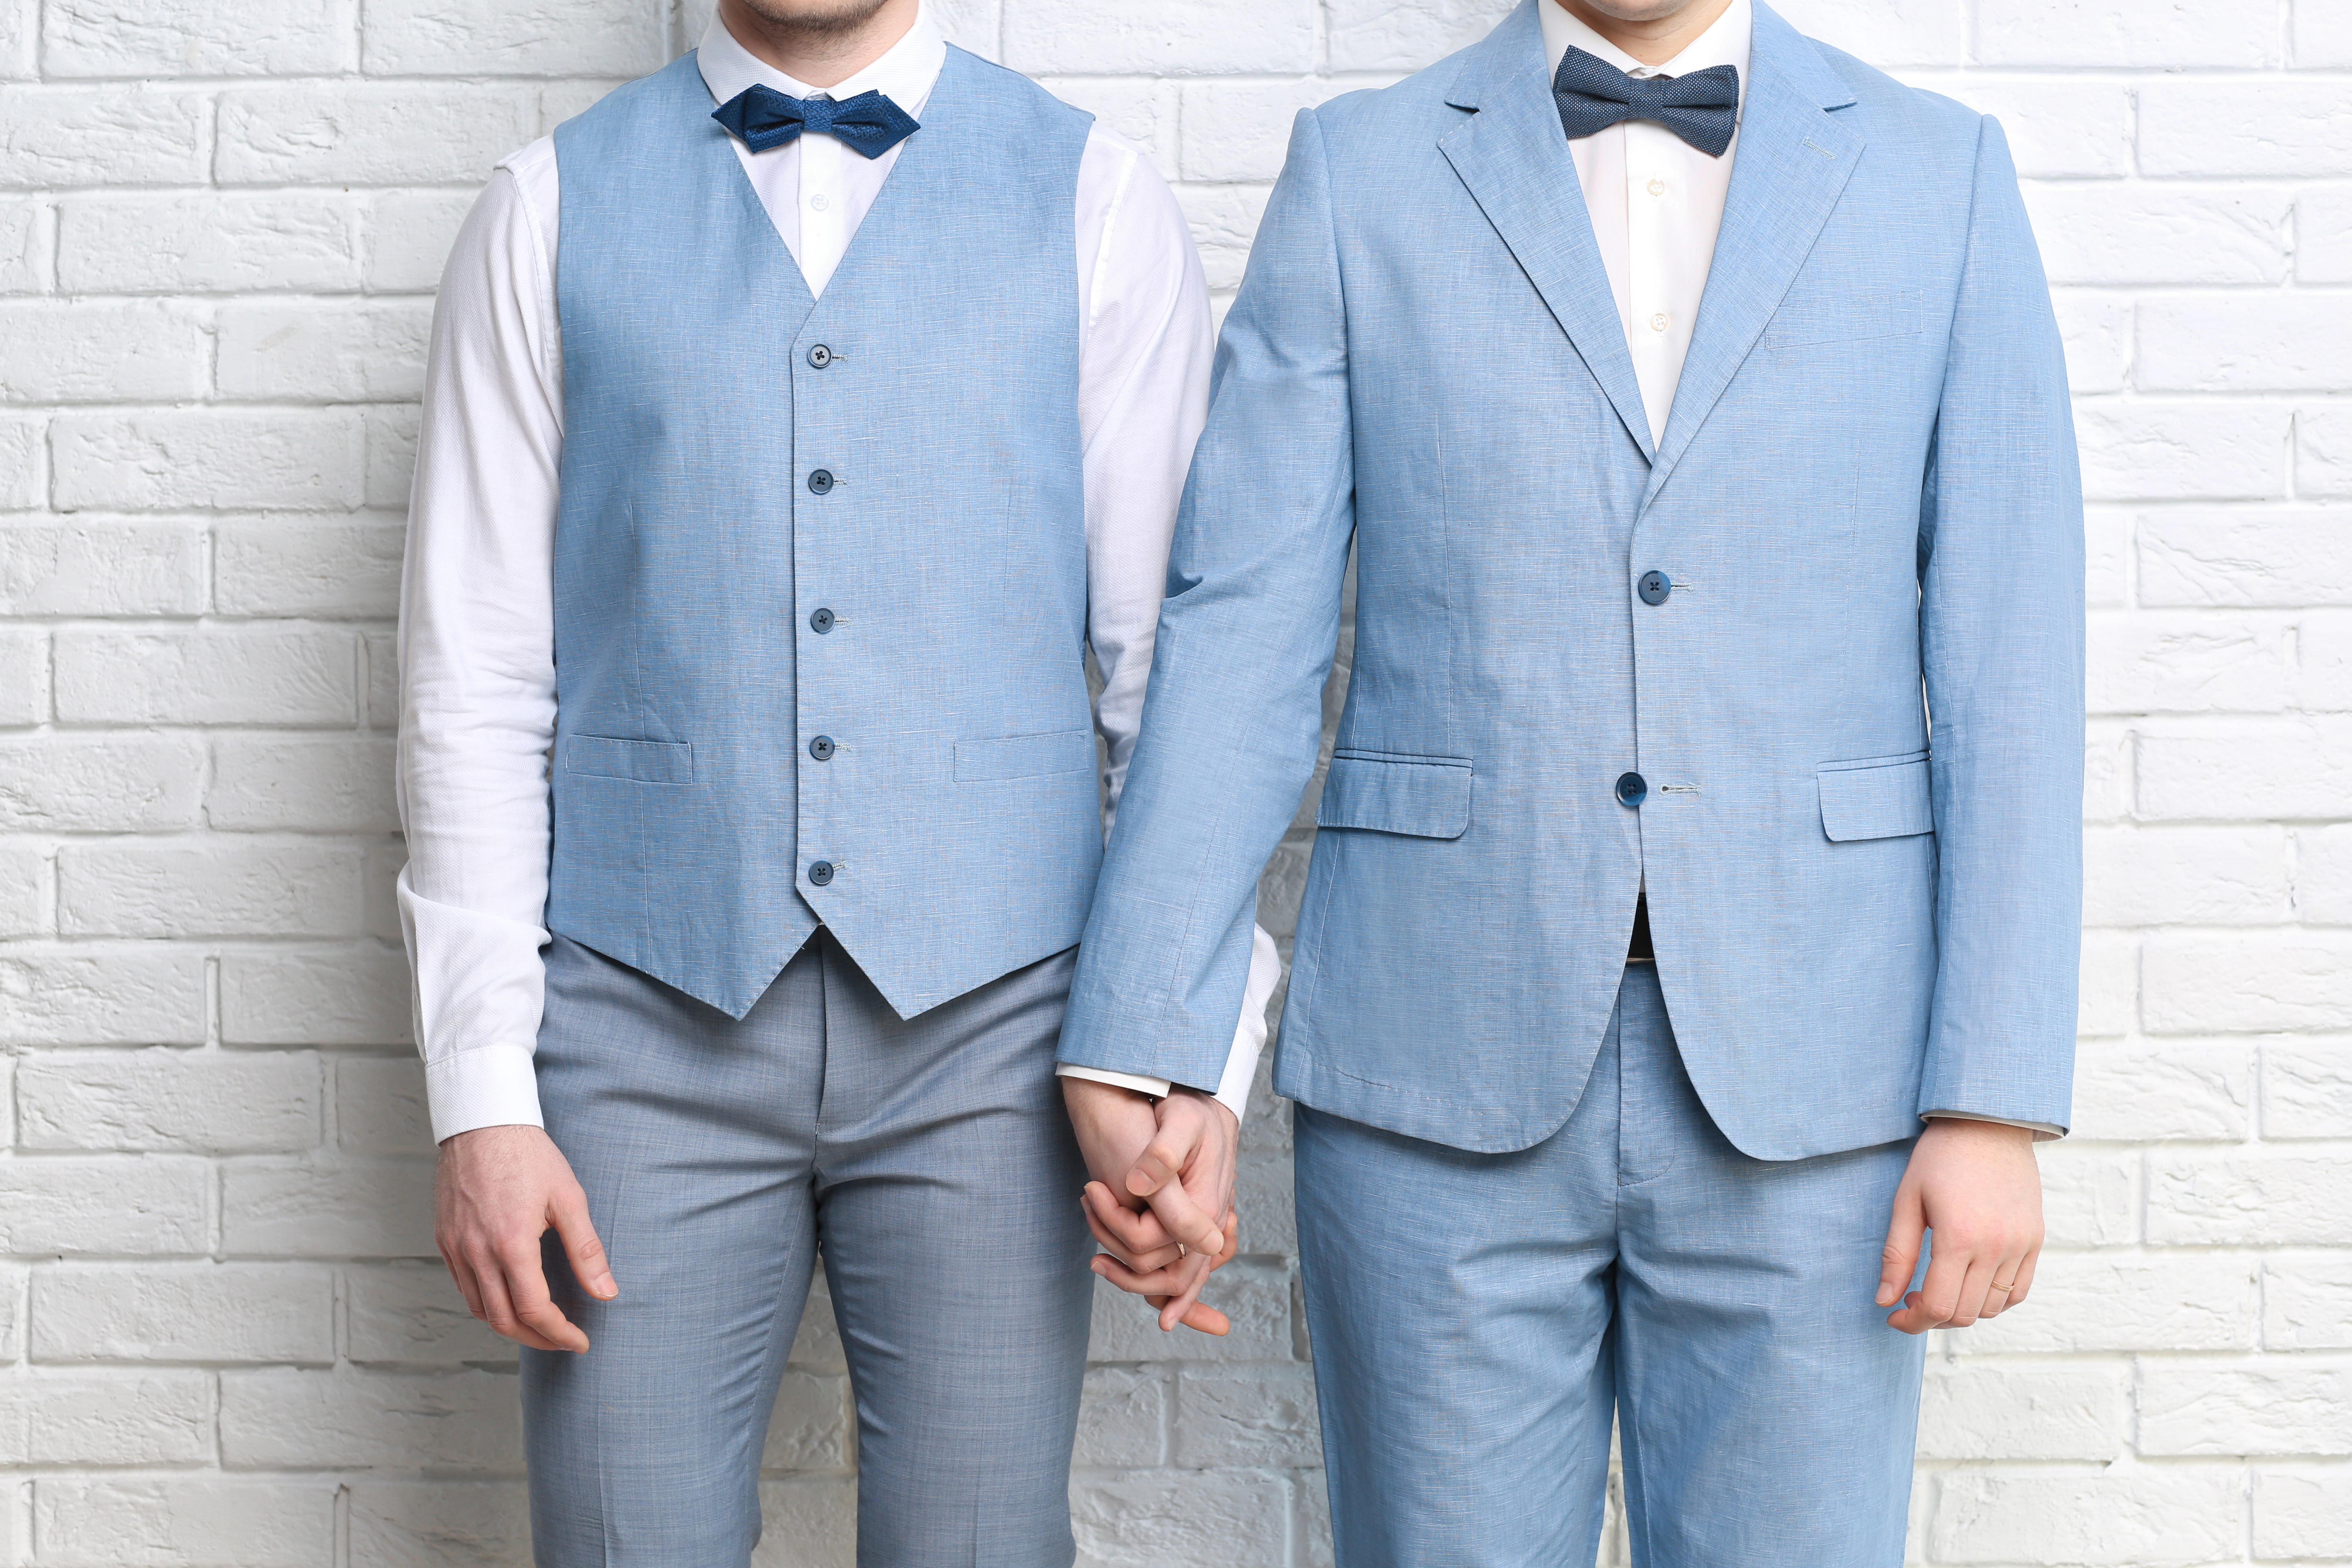 Marriage vs civil partnership - what's the difference?